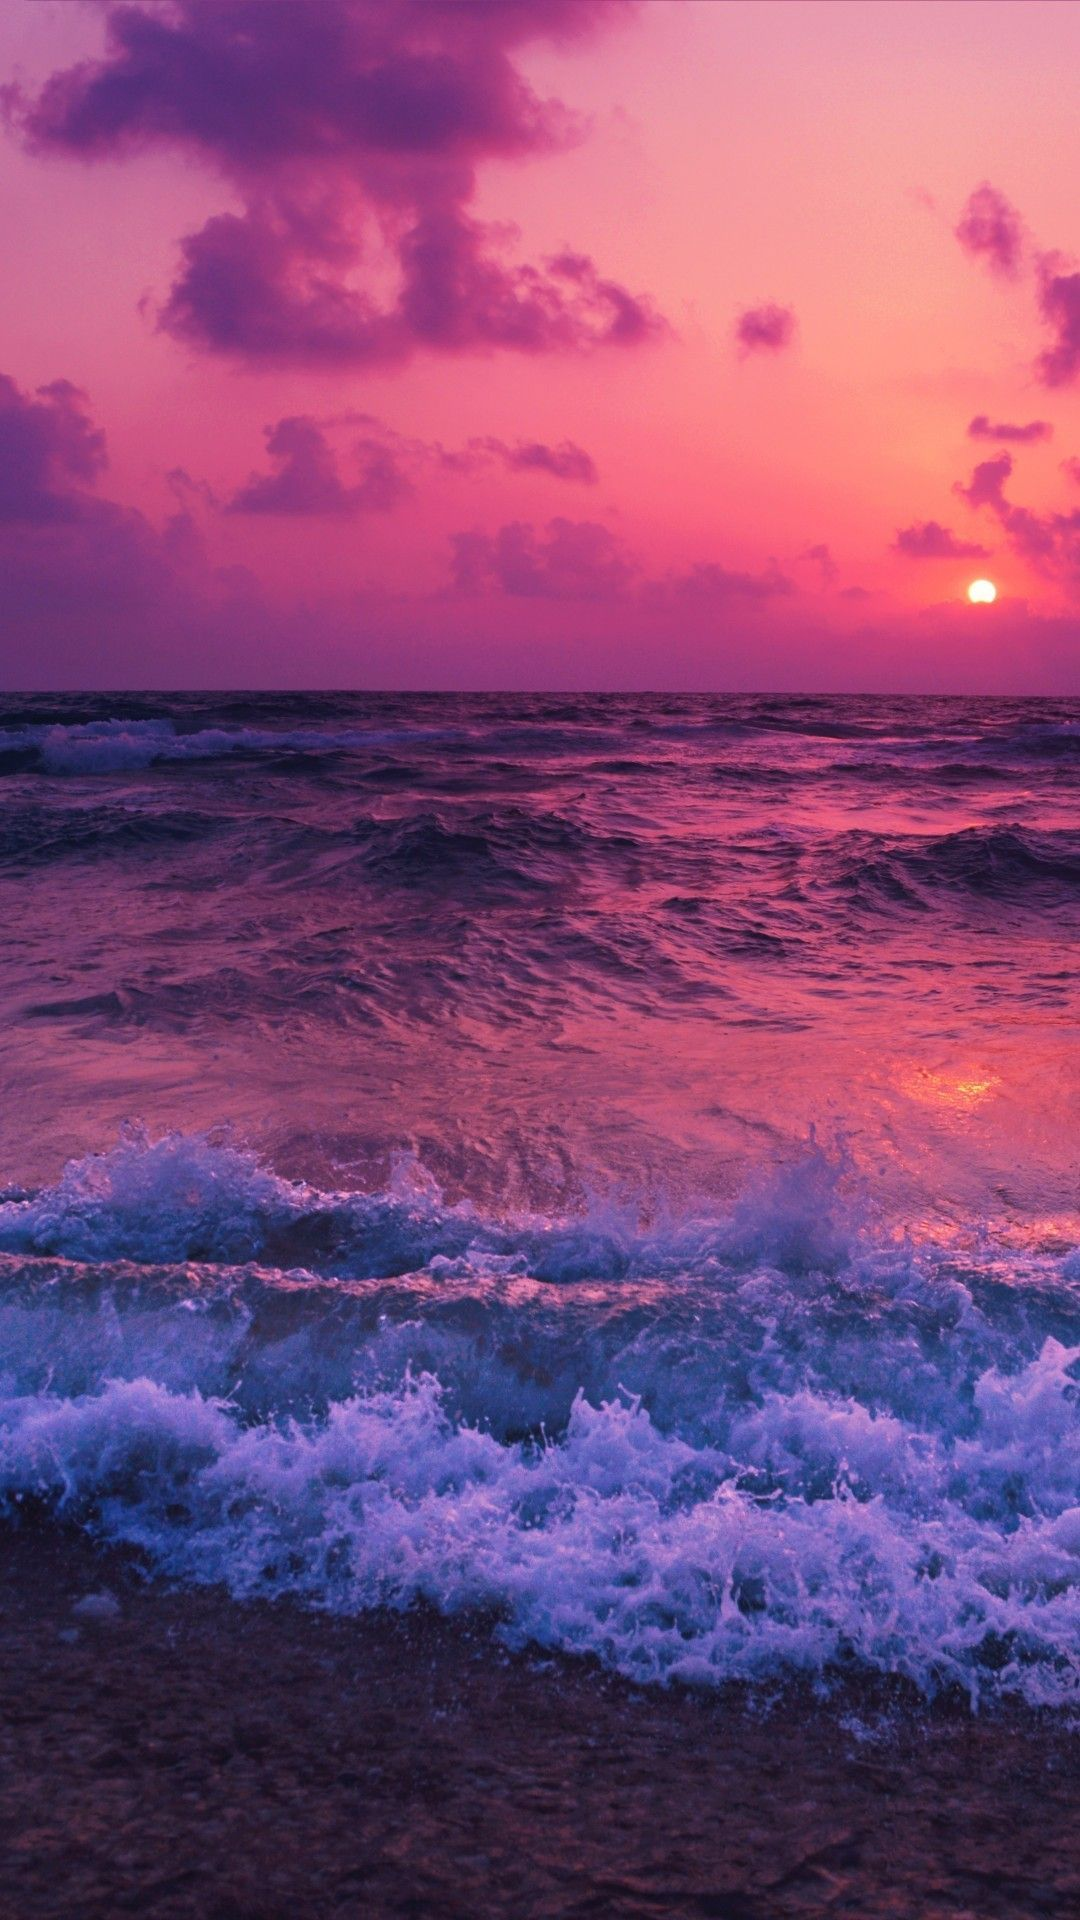 Download 1080x1920 Ocean, Sunset, Waves, Foam, Beach